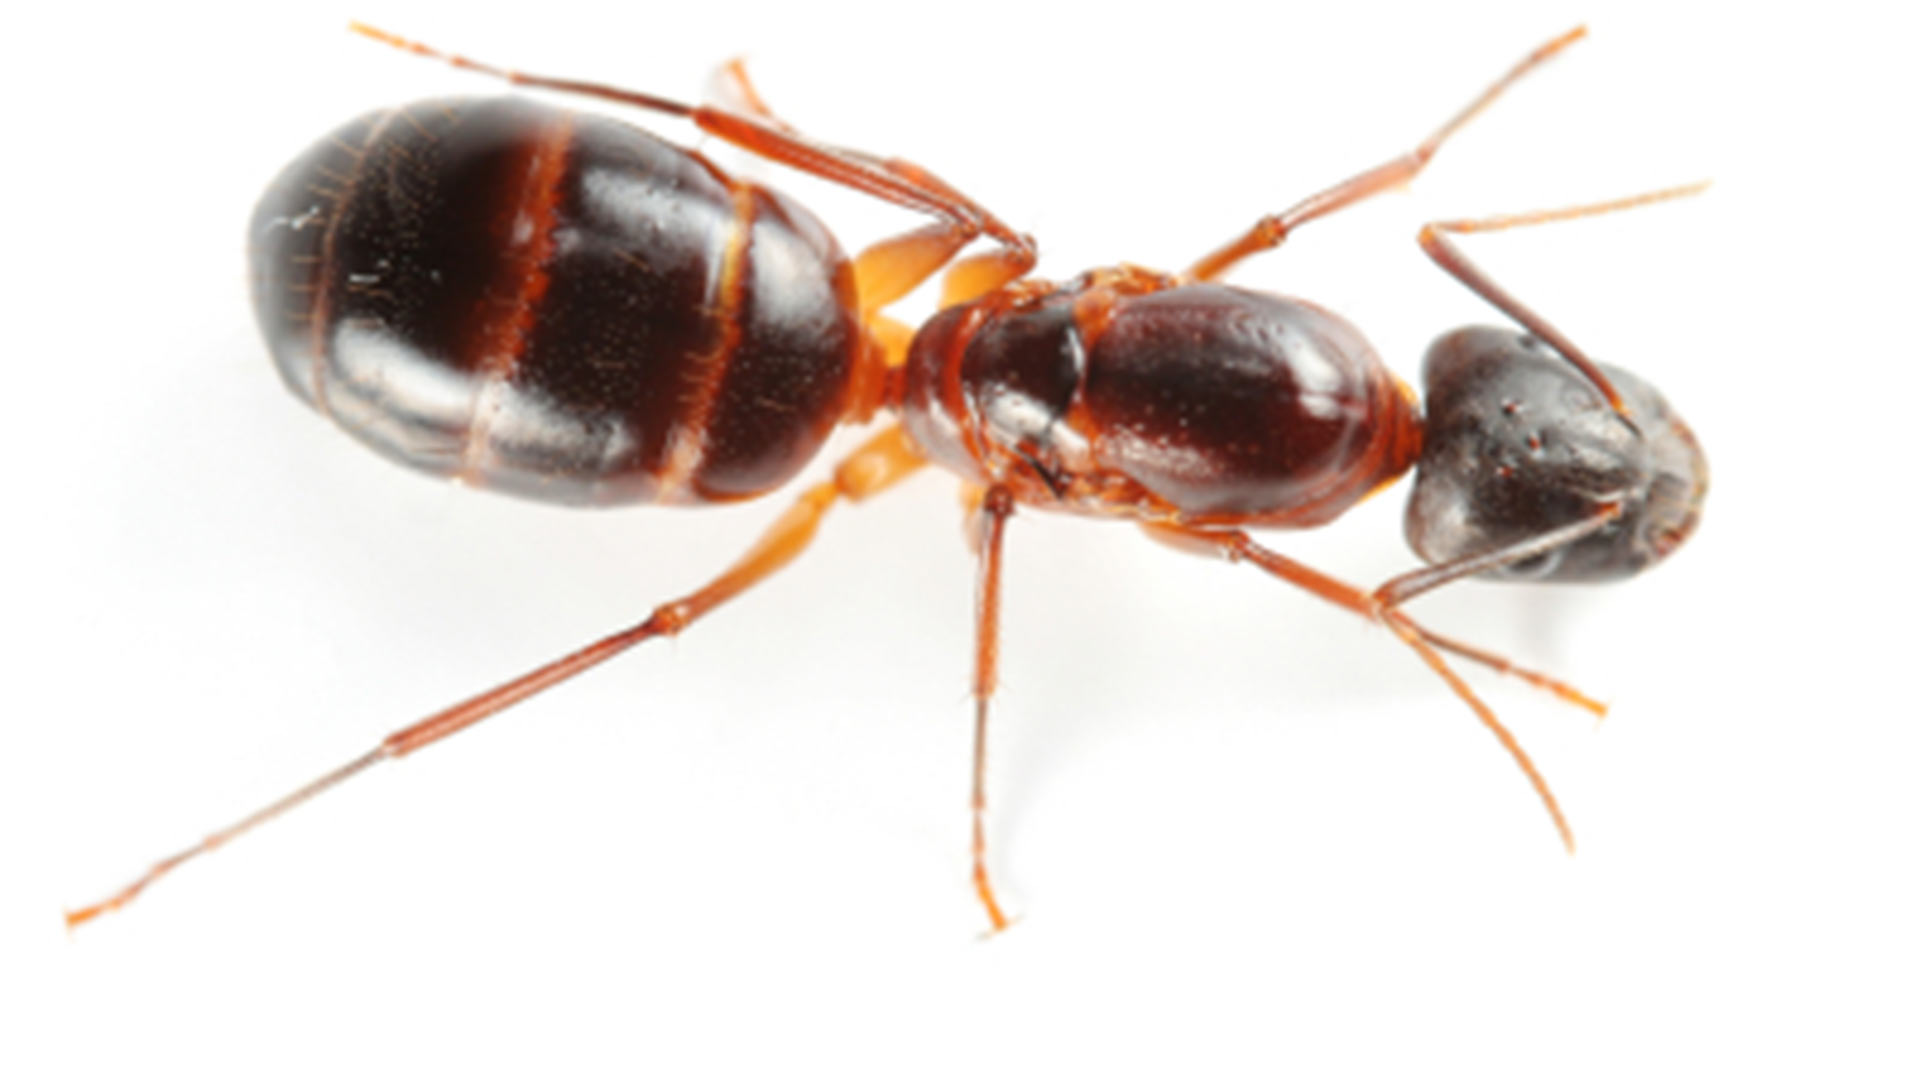 Carpenter Ants Live in Destructive Colonies